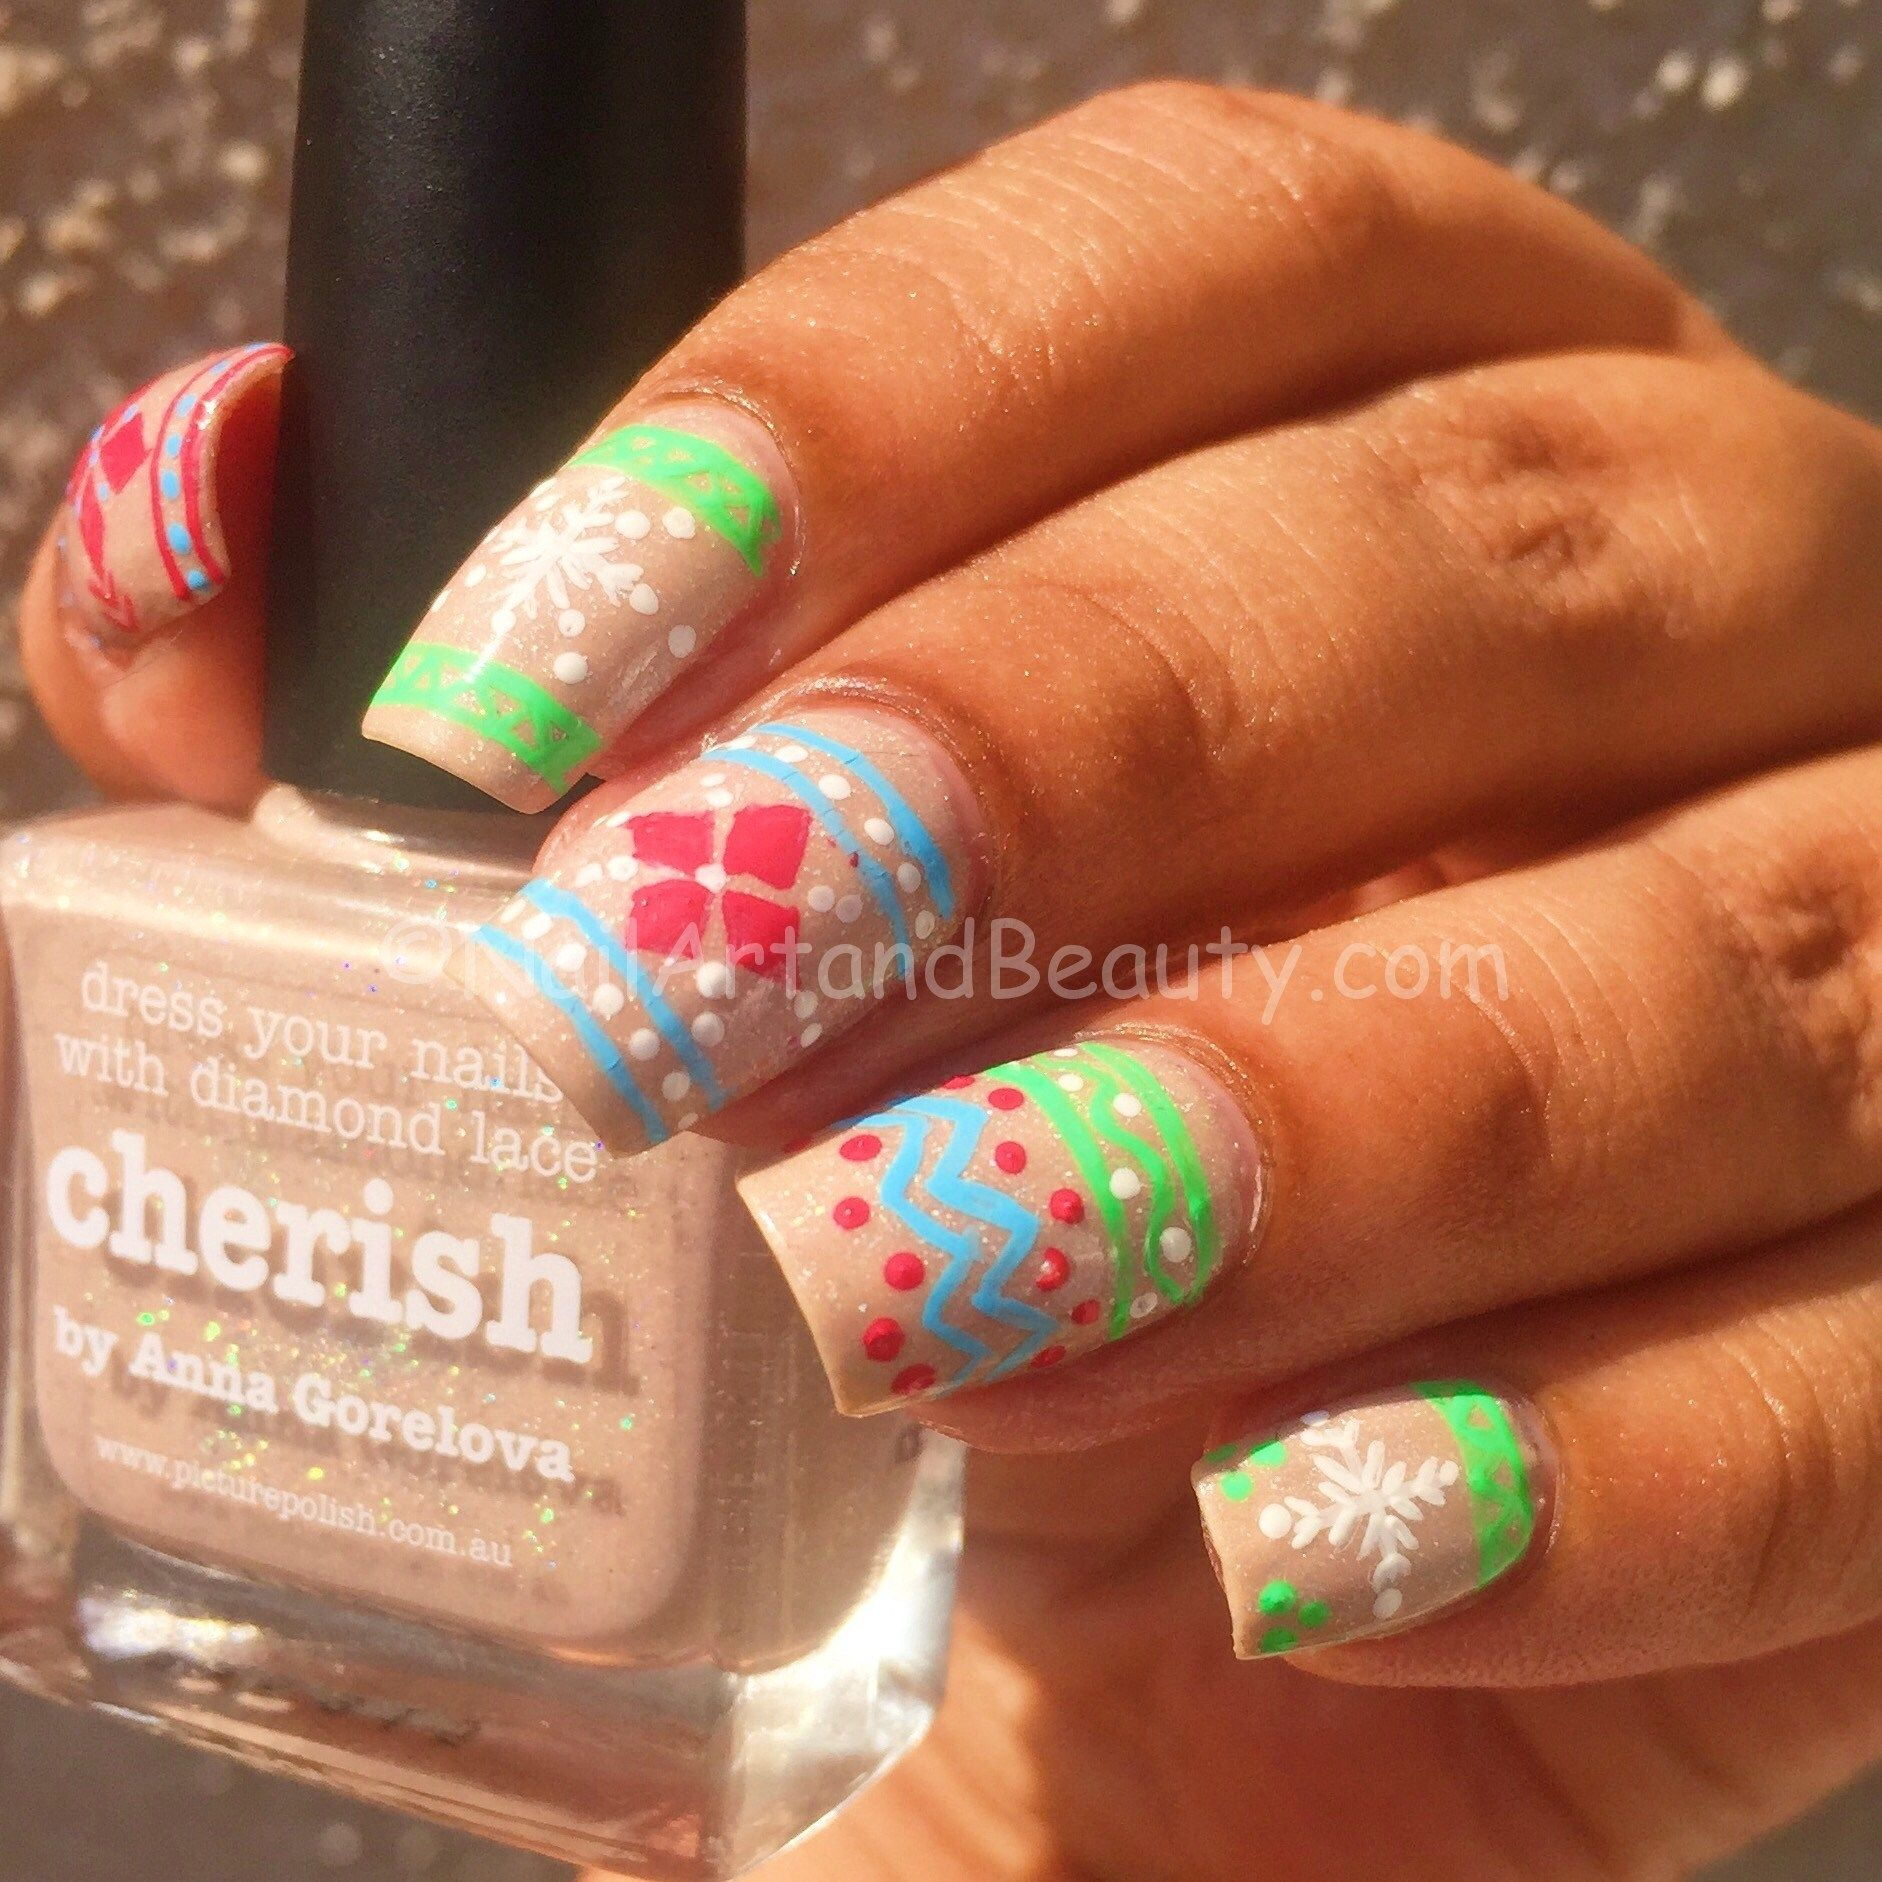 Candy Colored Sweater Mani Auf Bild Polish Cherish #Candy #Cherish